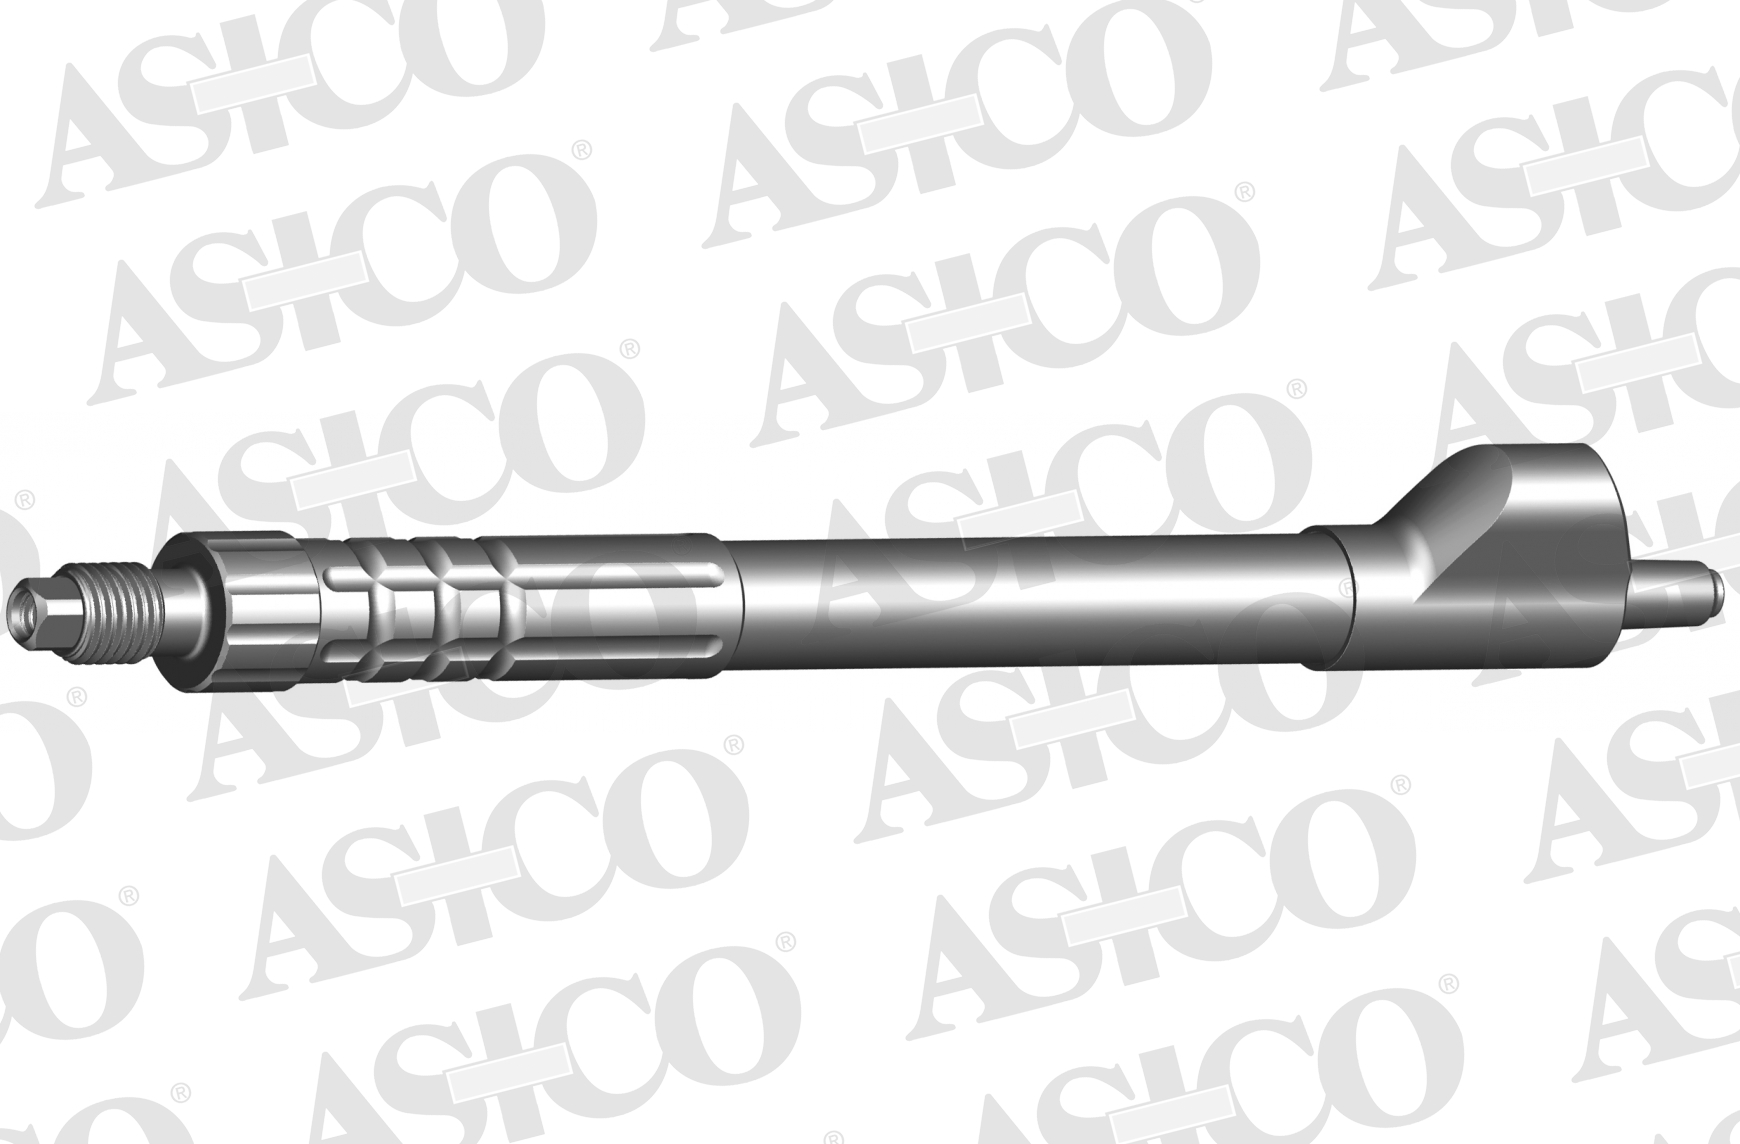 ASICO Cleaning I/A Handle